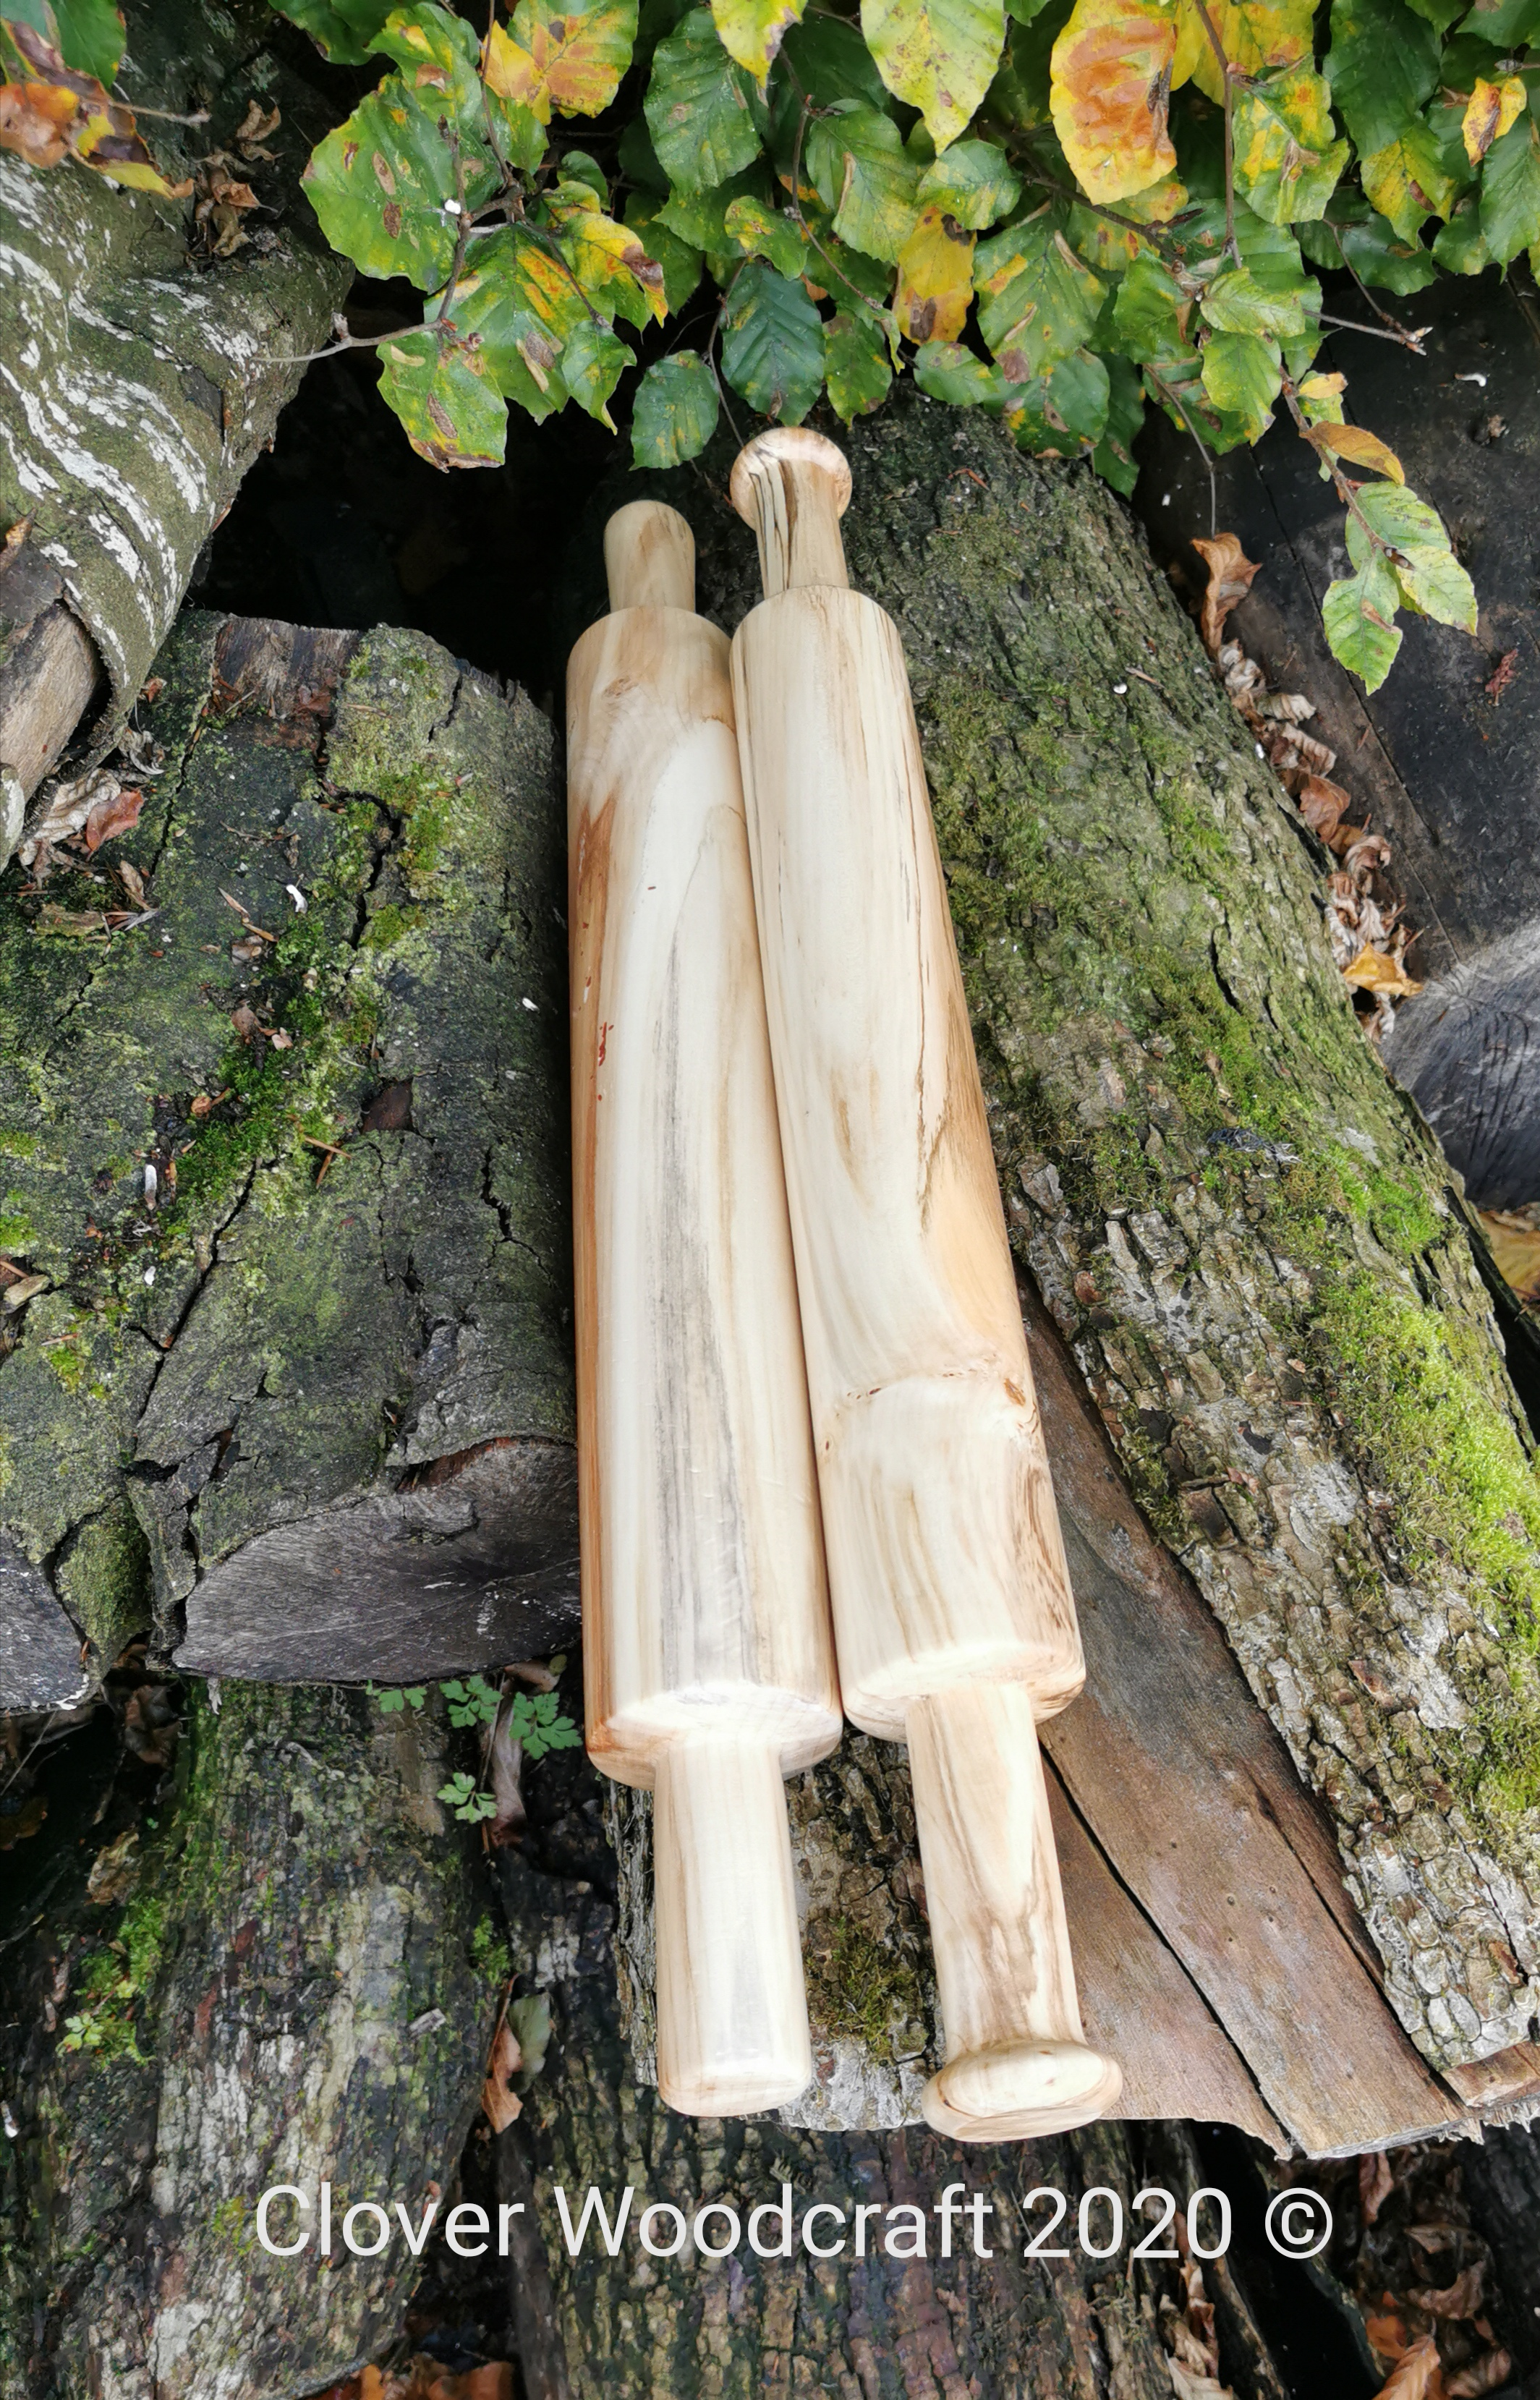 Irish Spalted Chestnut Wood Turned Rolling Pins